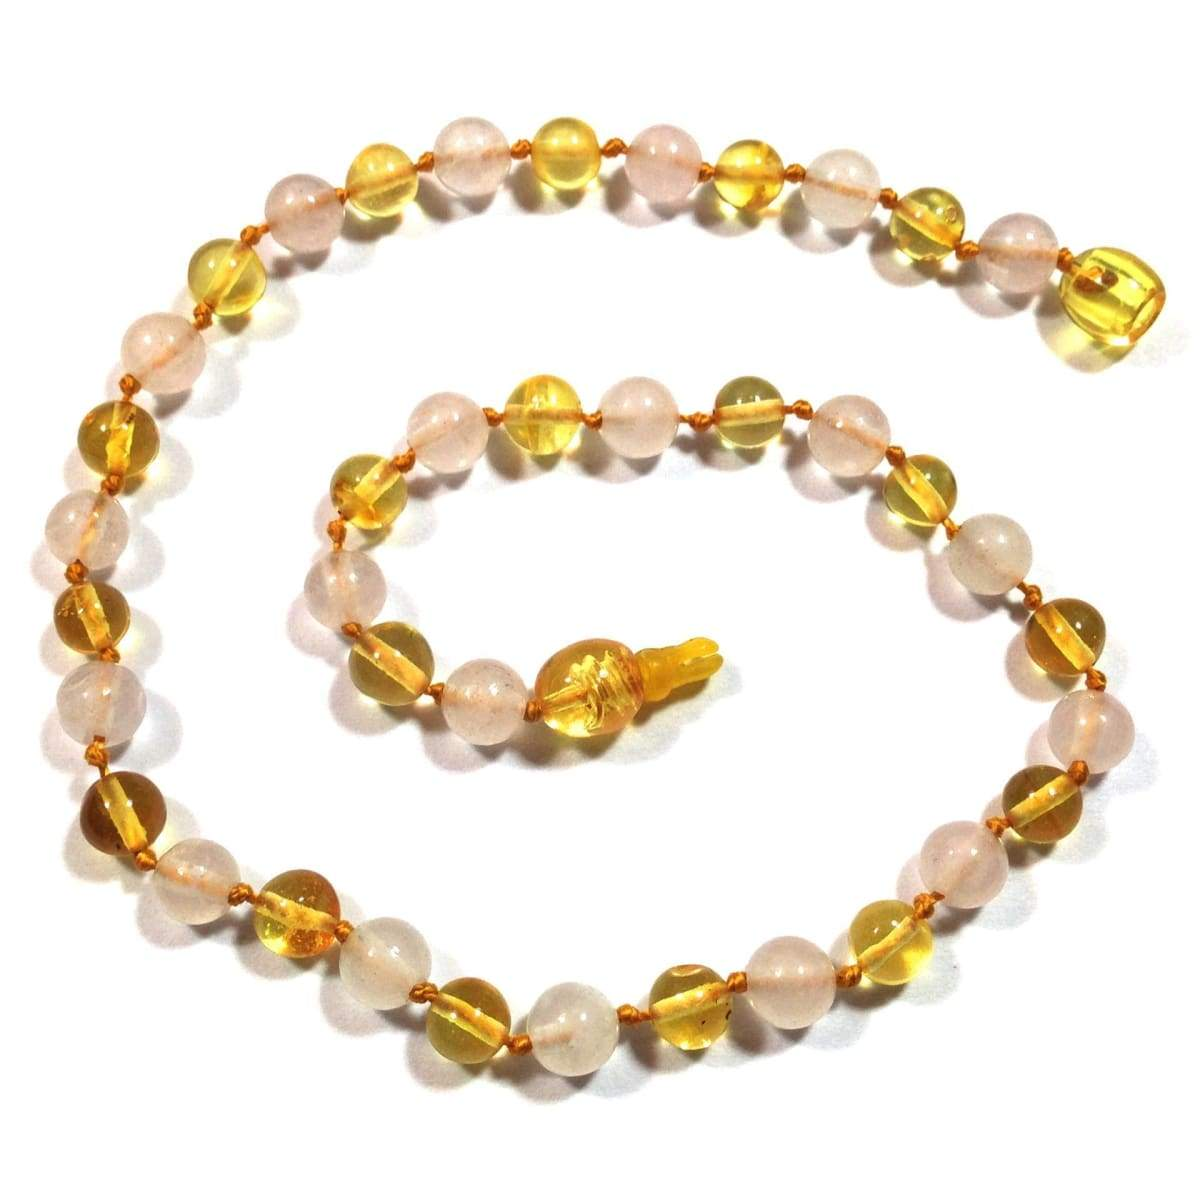 Amber-Gemstone Lemon & Rose Quartz - 12 Necklace - Pop Clasp - Baltic Amber & Gemstone Jewelry